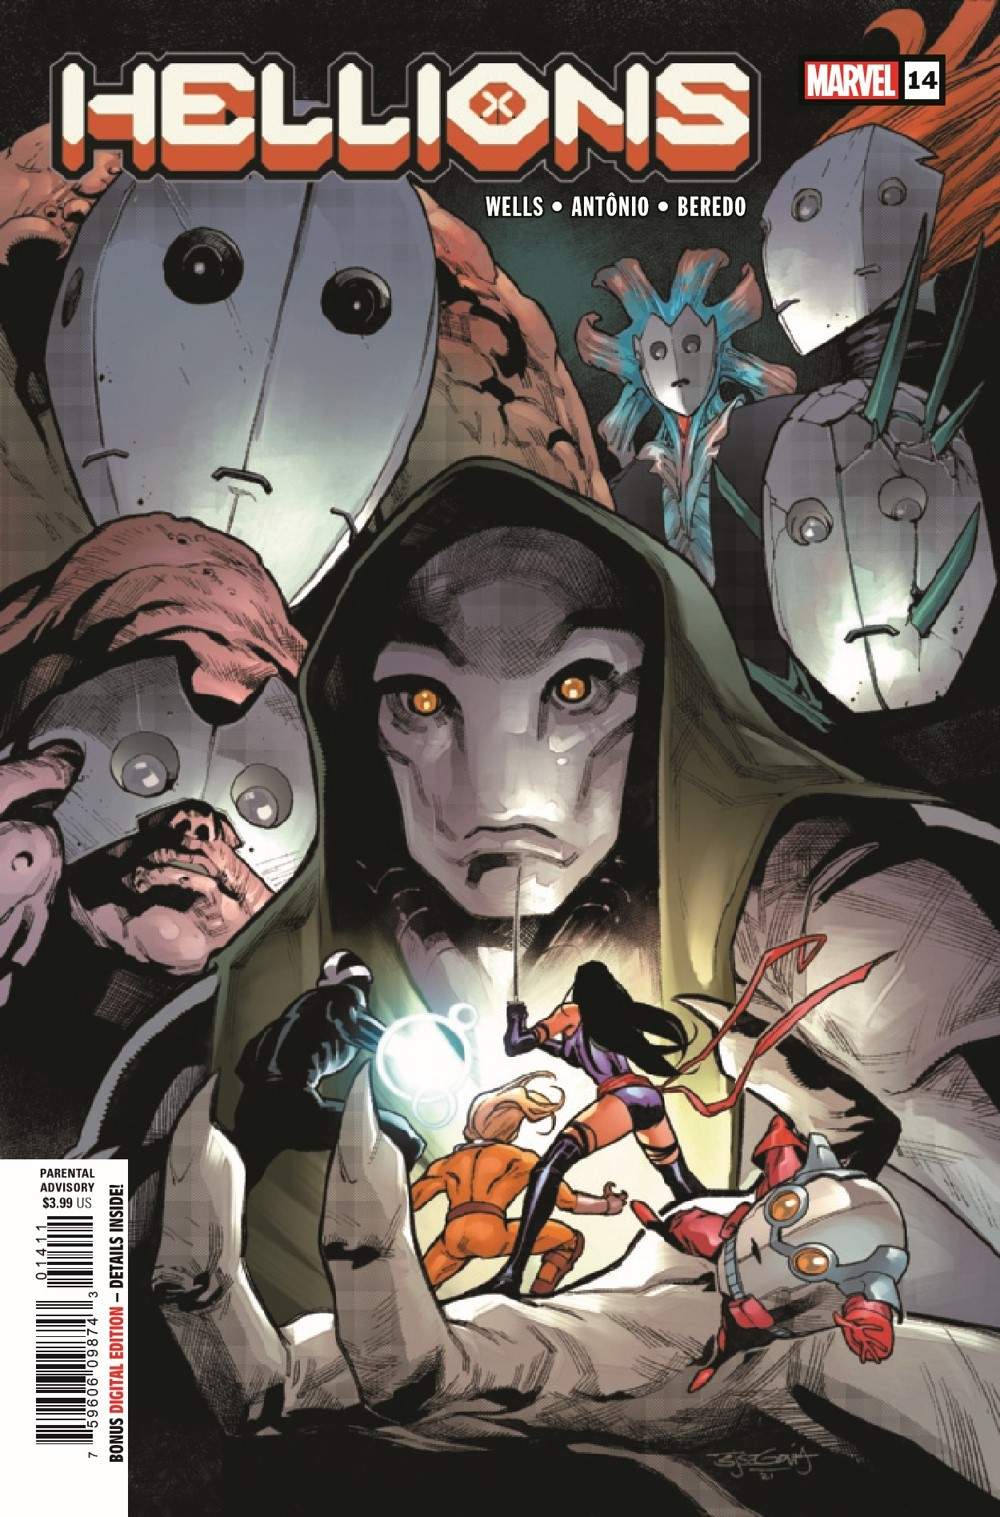 HELLIONS2020014_Preview-1 ComicList Previews: HELLIONS #14